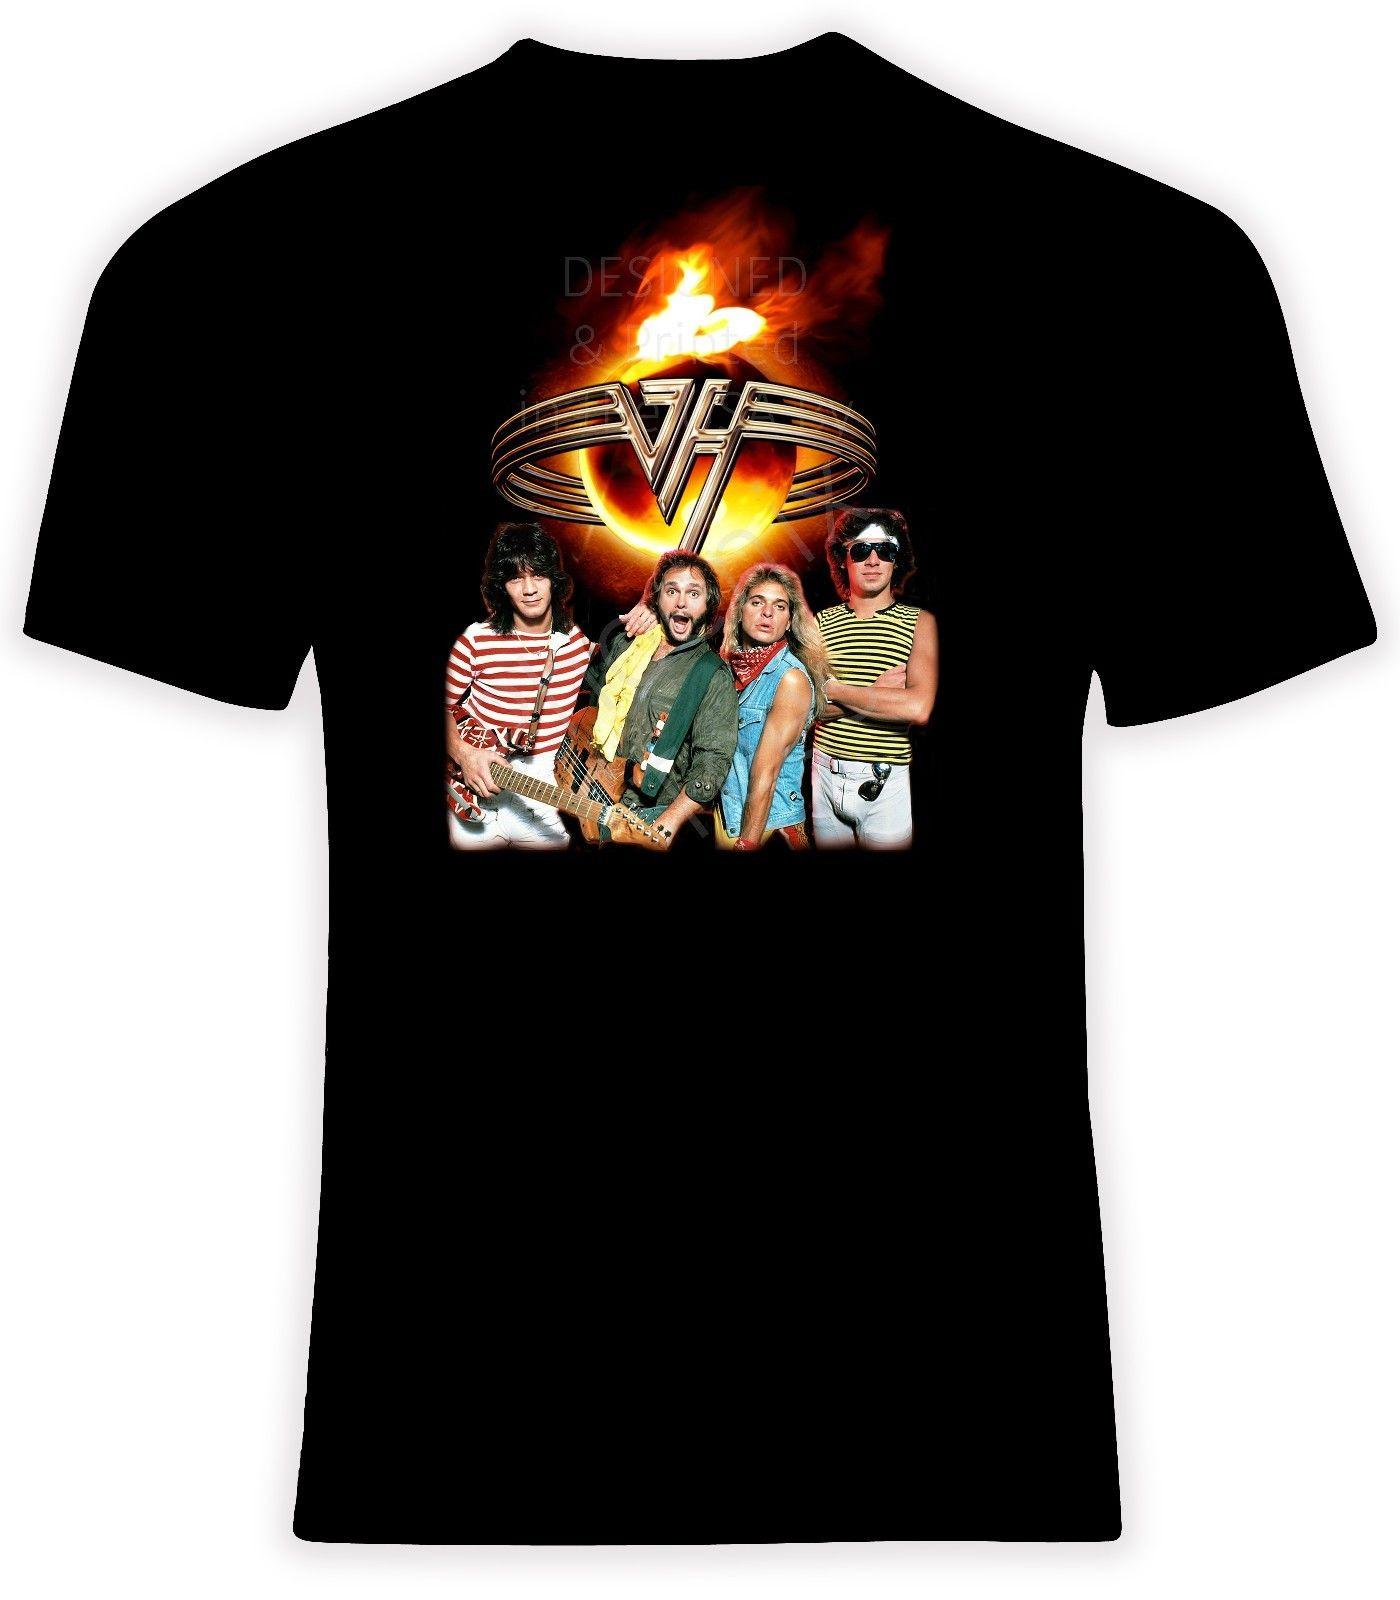 bead7e4d3fae Van Halen With David Lee Roth T Shirt, Sizes S 6X, Short Or Long Sleeve  Designer White T Shirt Printed T Shirts Funny From Beidhgate07, $11.01   DHgate.Com